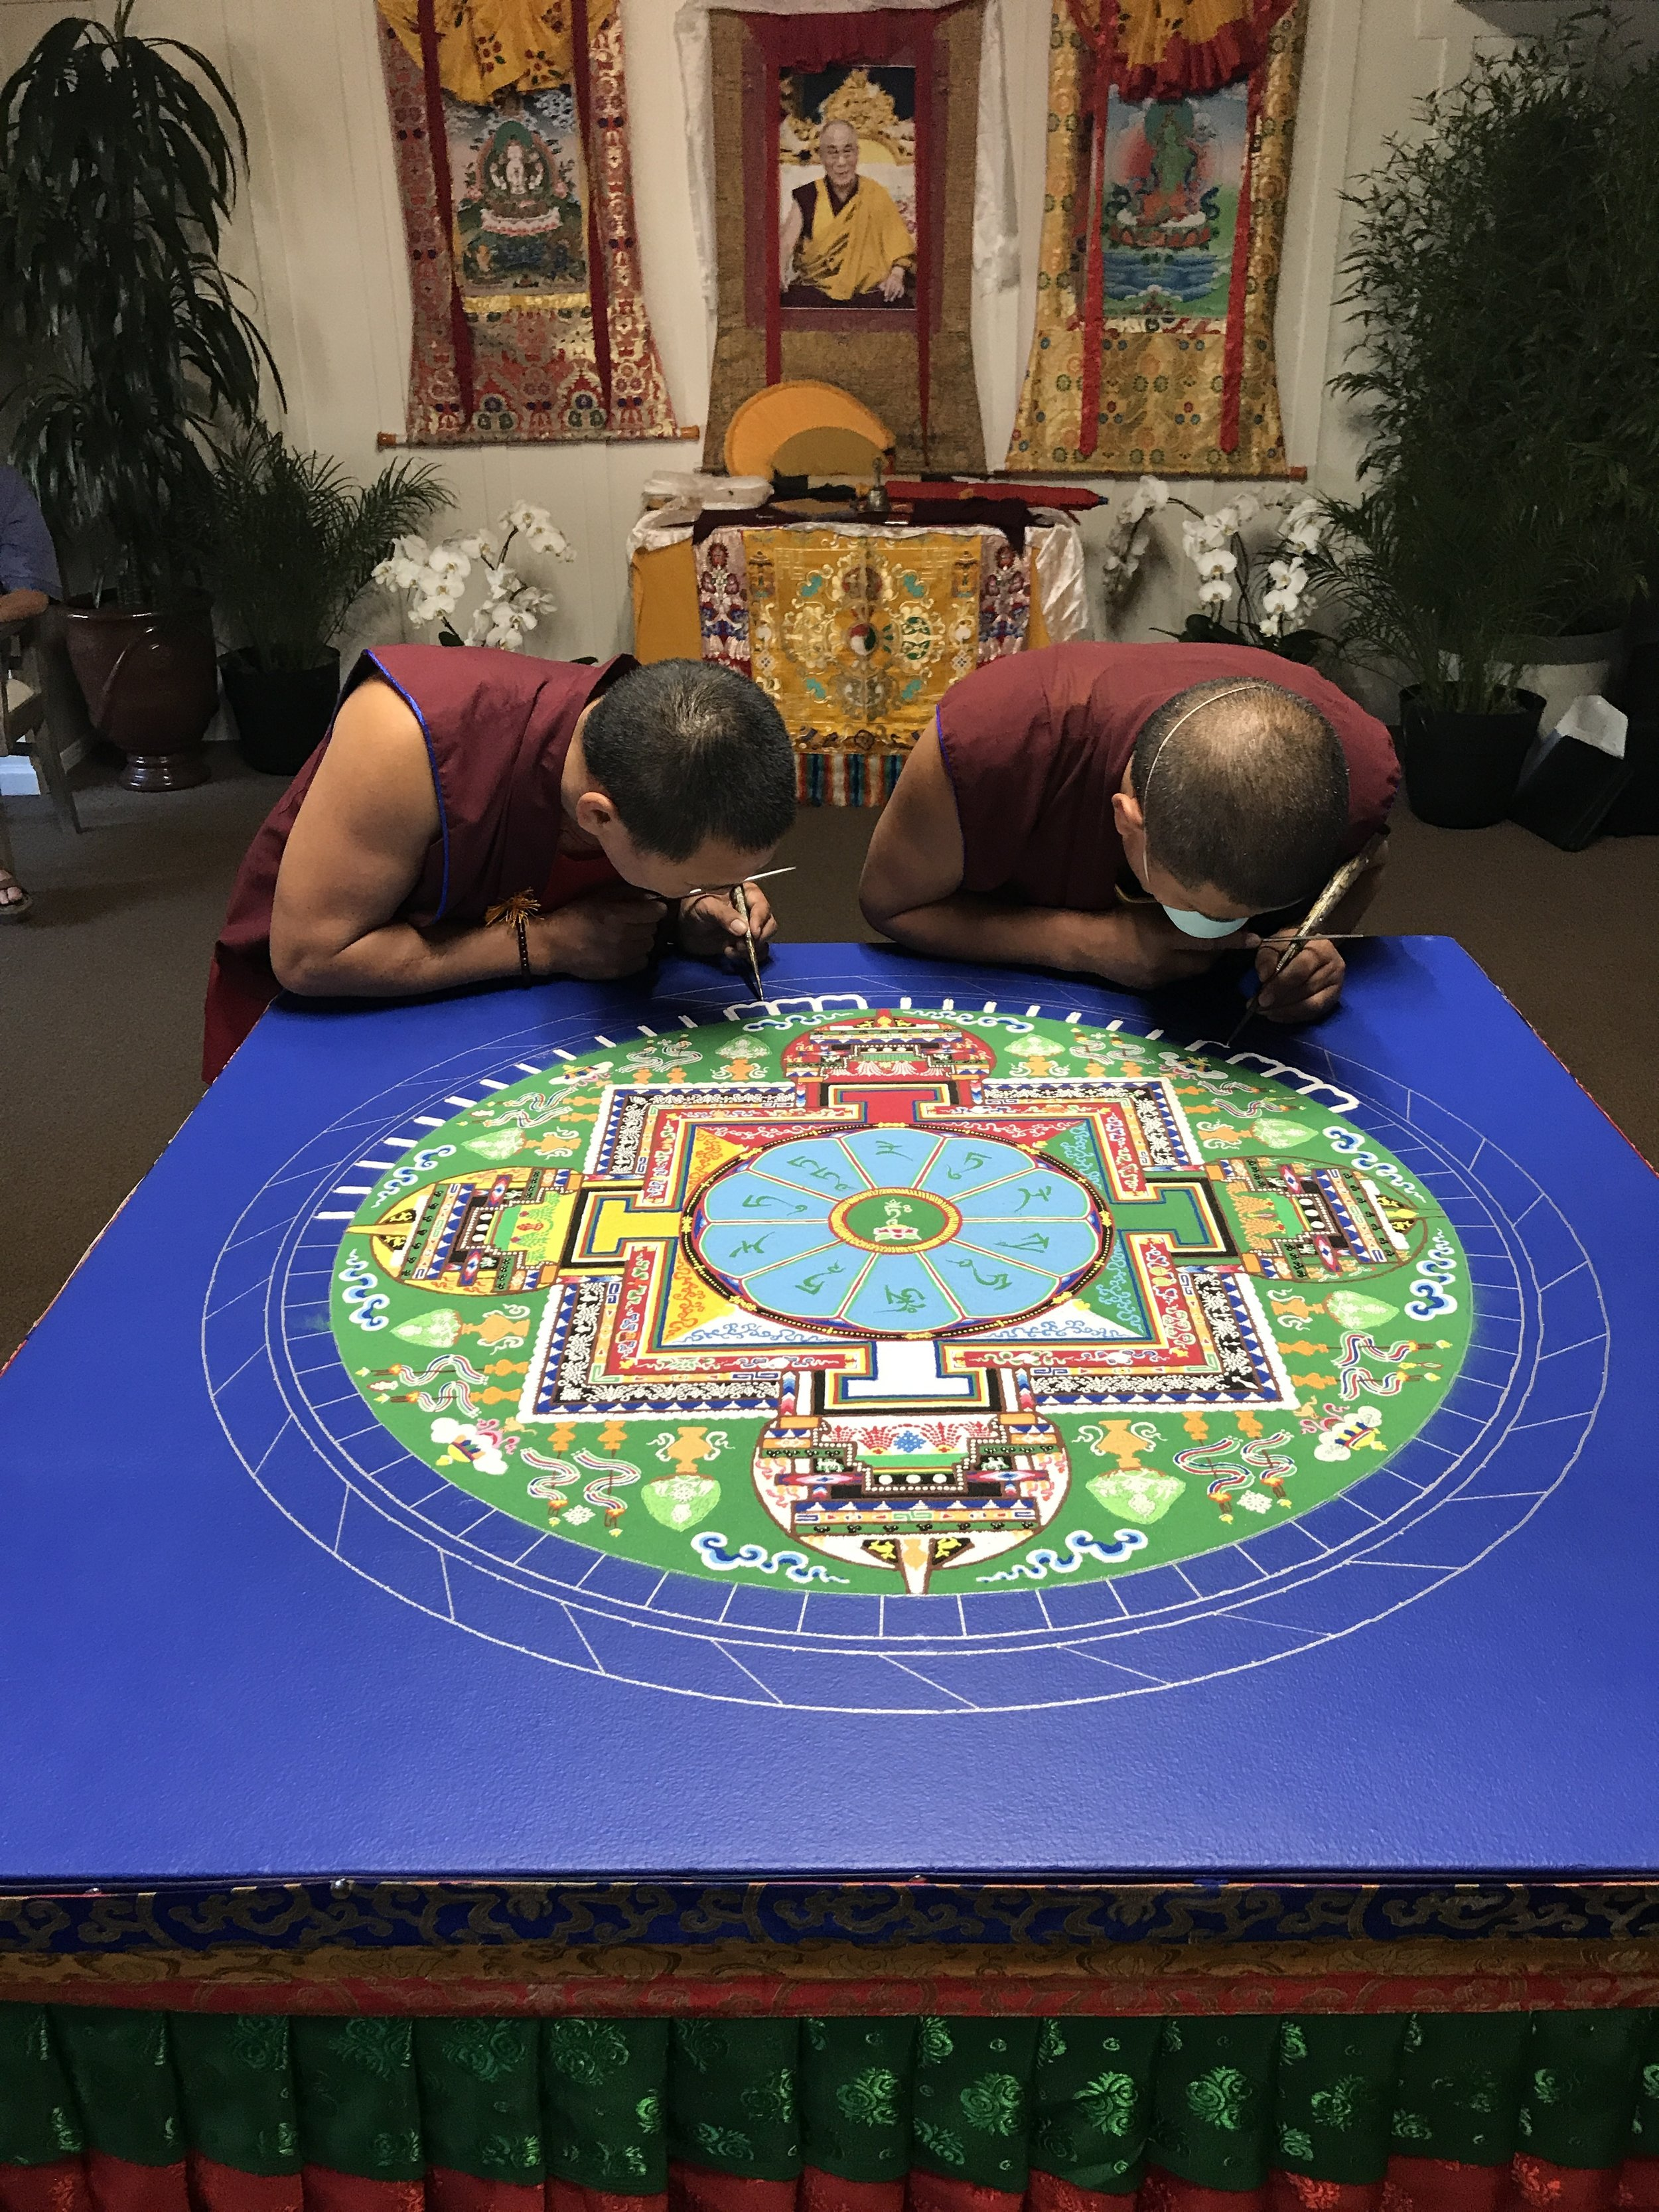 Tibetan Monks hard at work on their mandala as they reach their completion.